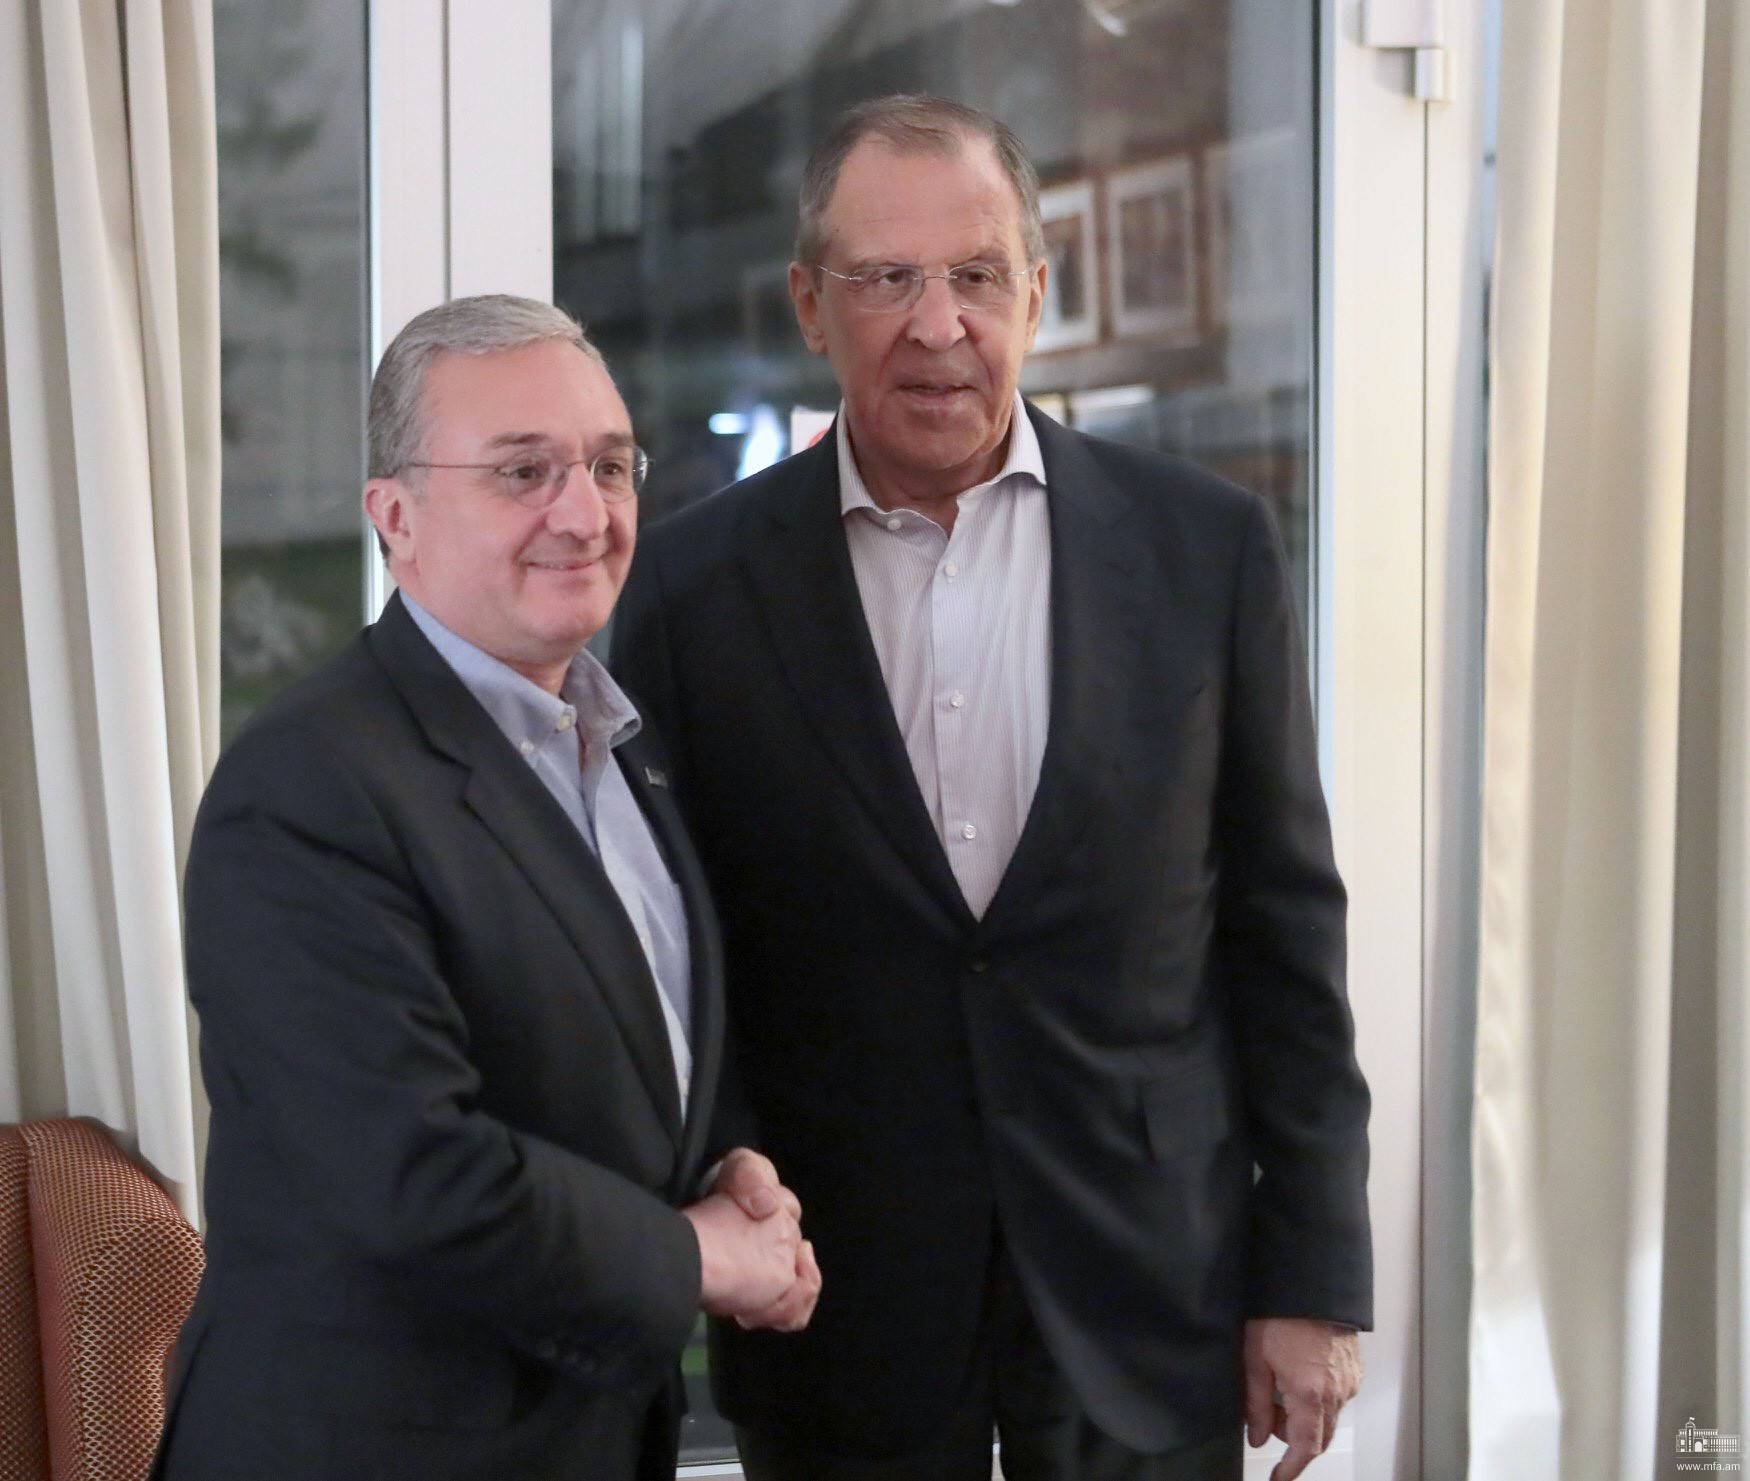 Meeting of Foreign Ministers of Armenia and Russia